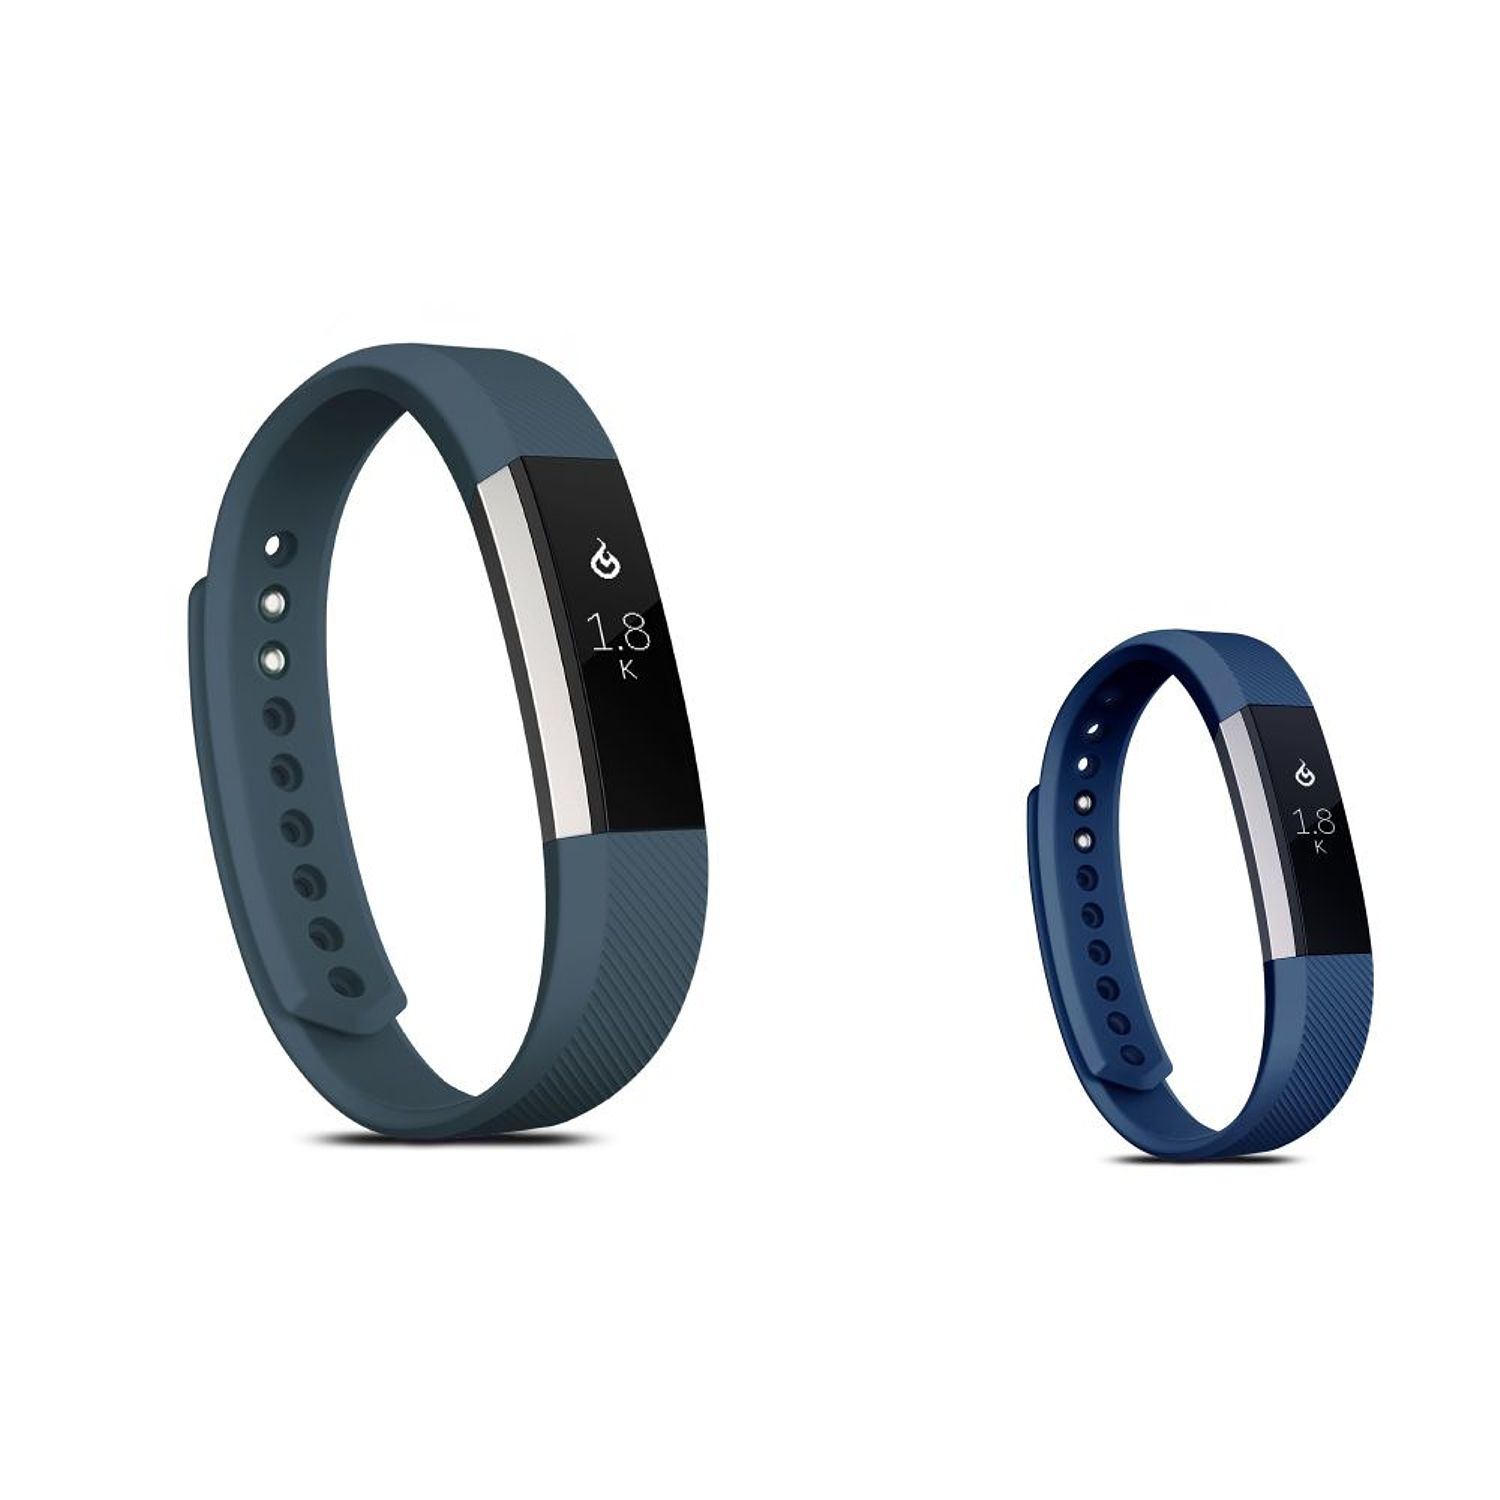 Fitbit Alta HR and Fitbit Alta Replacement Bands LARGE Size 2 PCS BUNDLE SET, by Zodaca Soft TPU Rubber Adjustable Wristbands Watch Band Strap For Fitbit Alta HR / Alta LARGE Size - Dark Gray + Navy